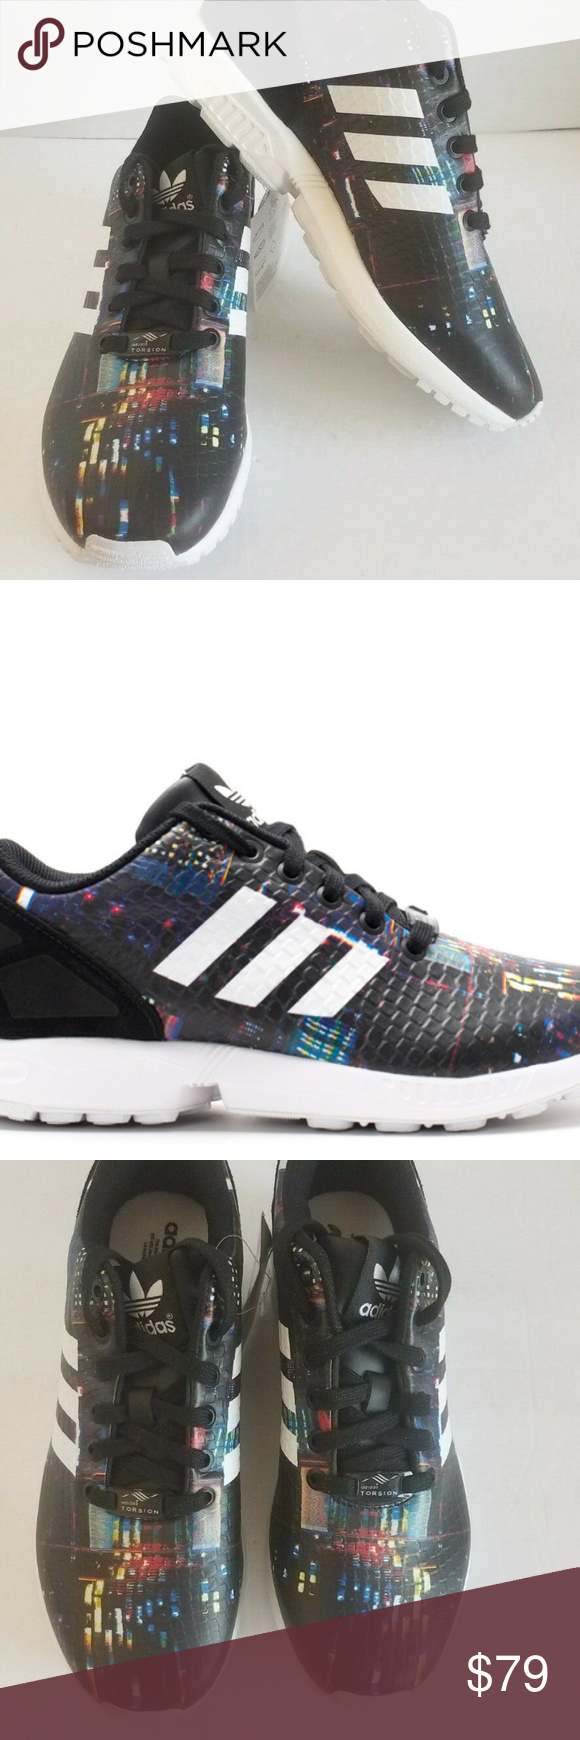 430c5c2dd adidas Womens ZX Flux W Tokyo Lights B25834 Shoes adidas Womens ZX Flux W  Tokyo Lights B25834 Running Shoes Size 7 Brand New NO BOX The latest  successor to ...